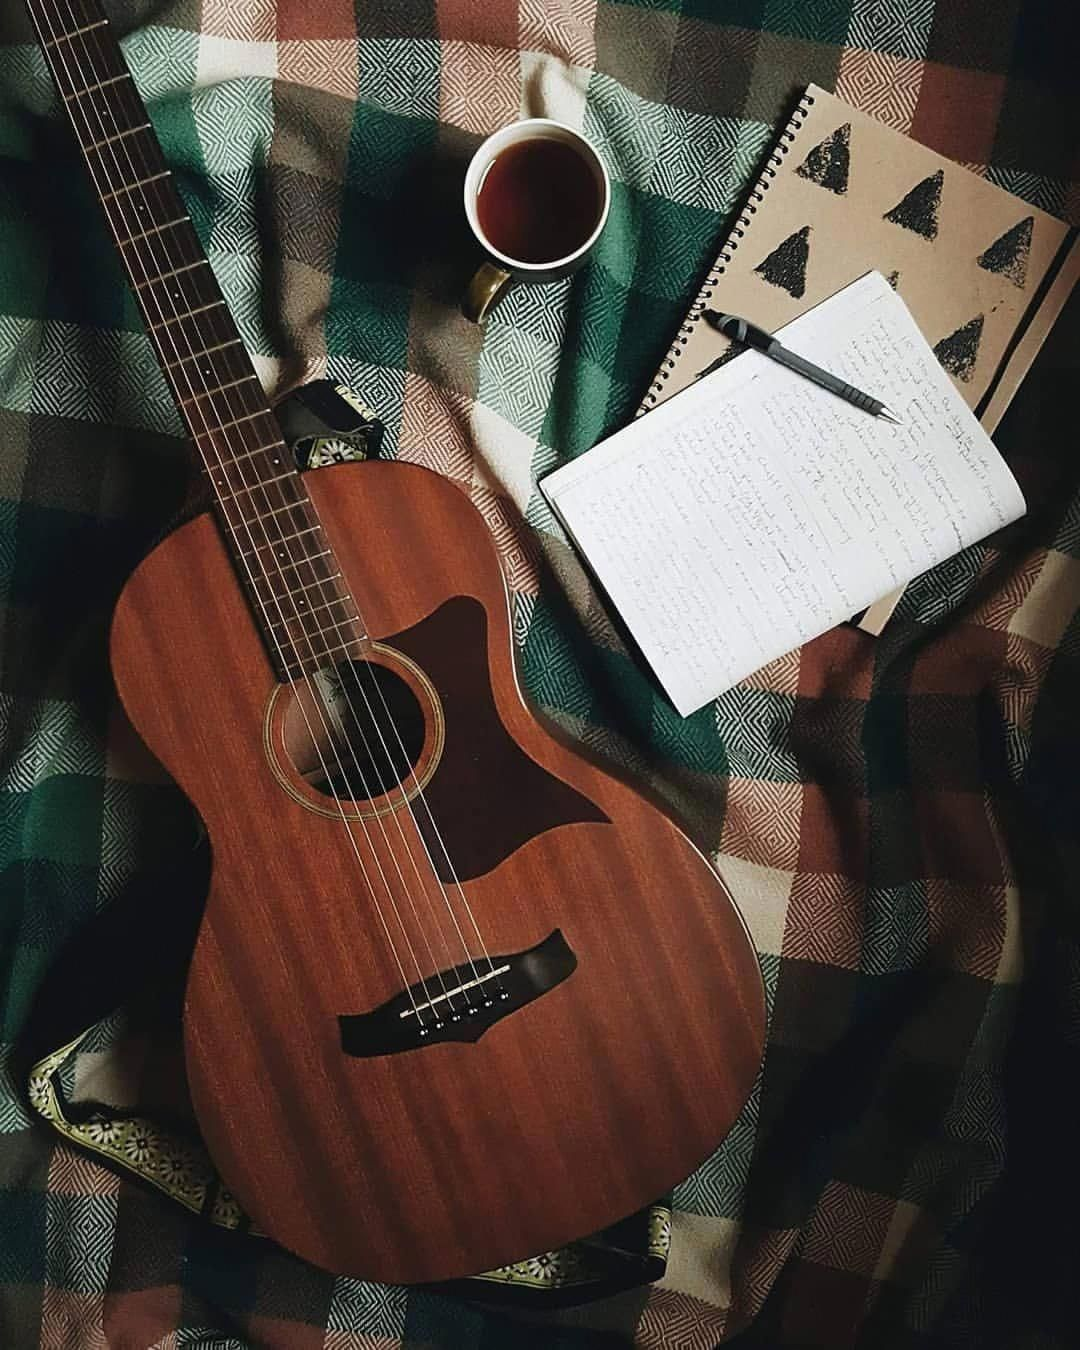 These Acoustic Guitars Are Stunning Acousticguitars Acoustic Guitar Photography Guitar Guitar Photography